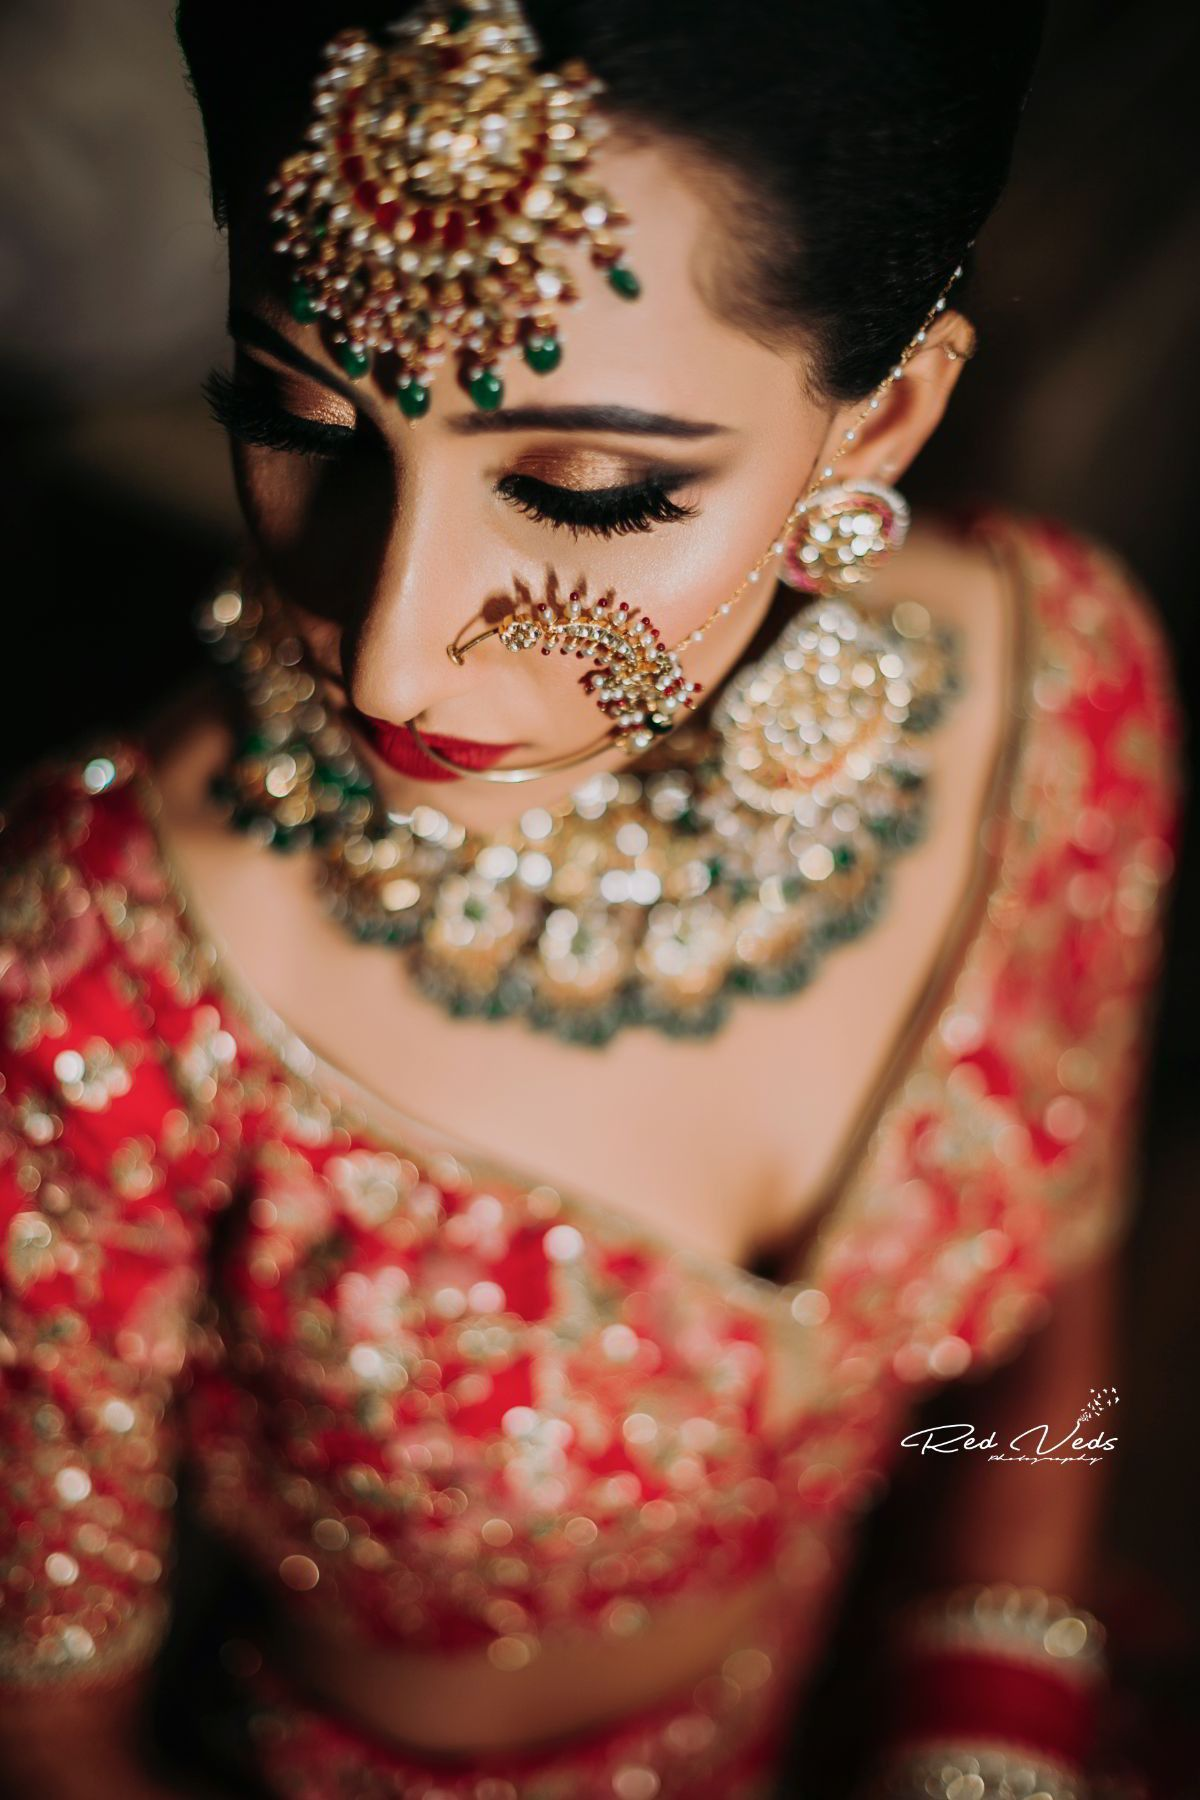 Bridal portrait photography is such a great way to make